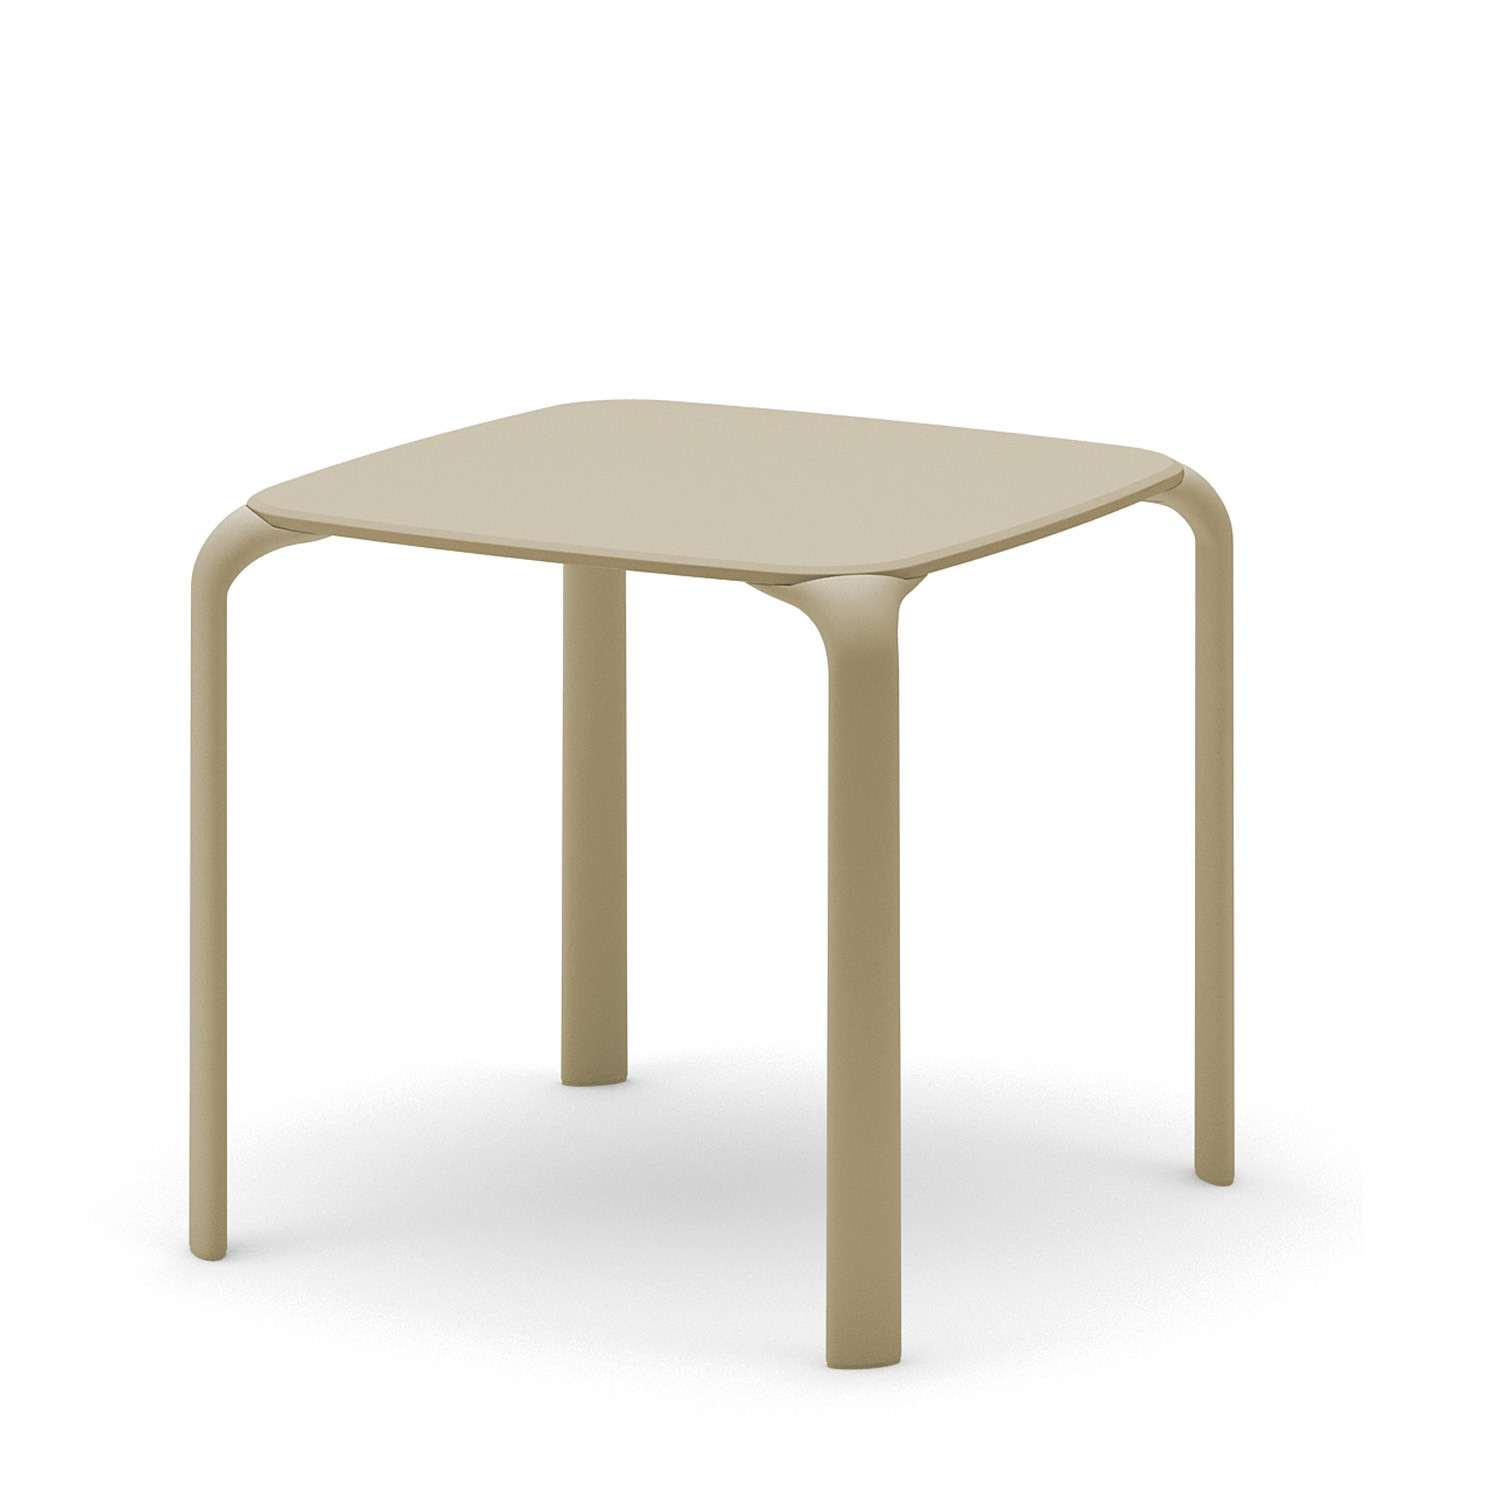 Drop Square Cafe Tables